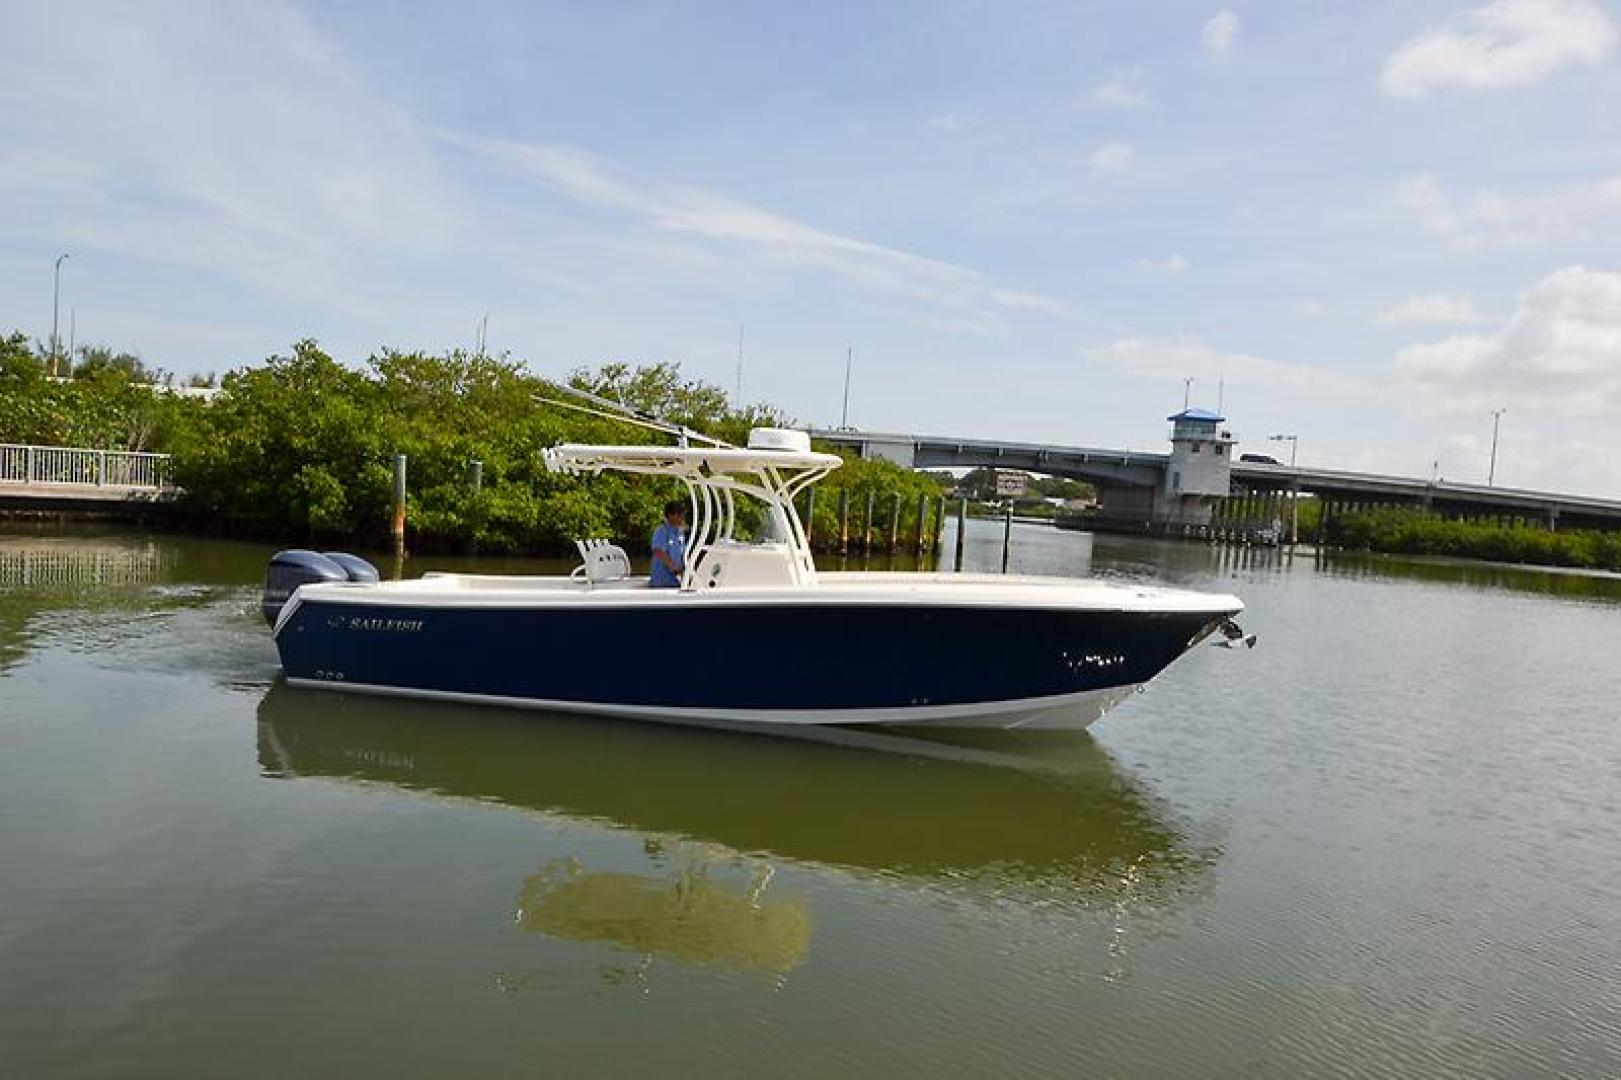 2014 Sailfish 320 cc-14.jpg